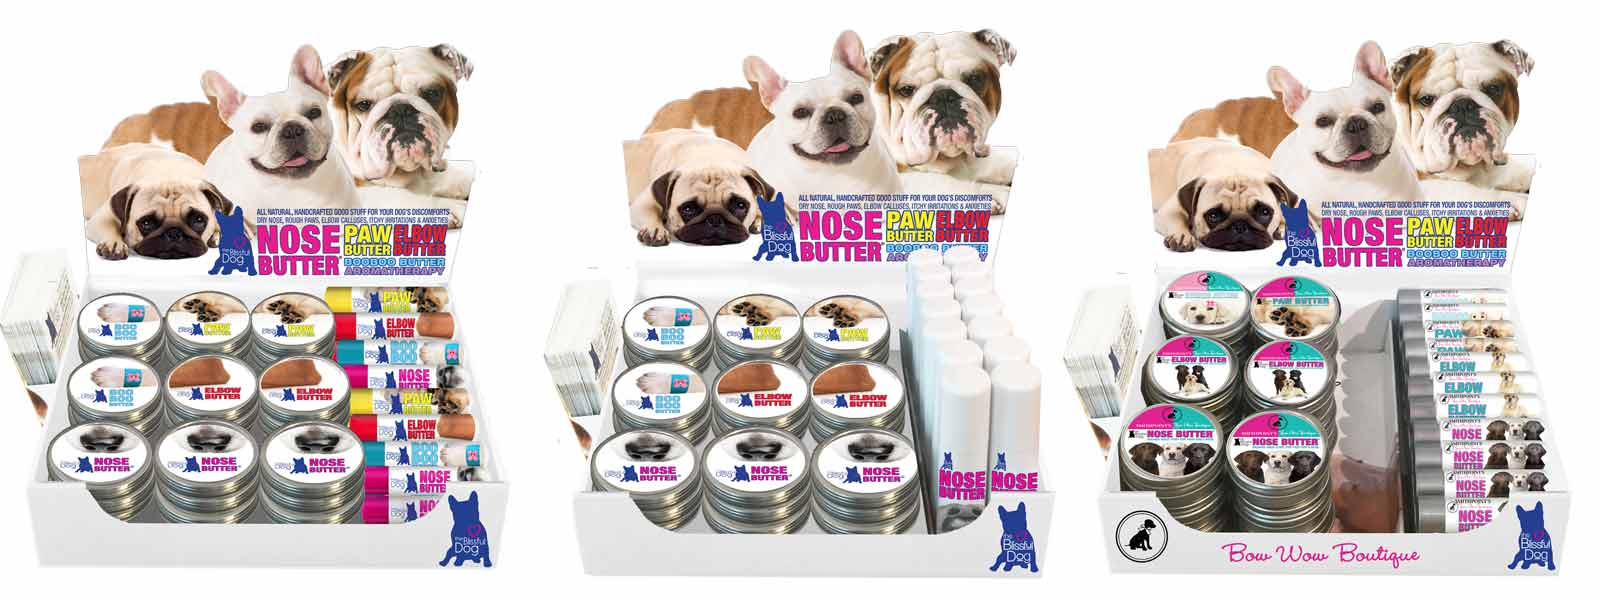 wholesale products pet industry